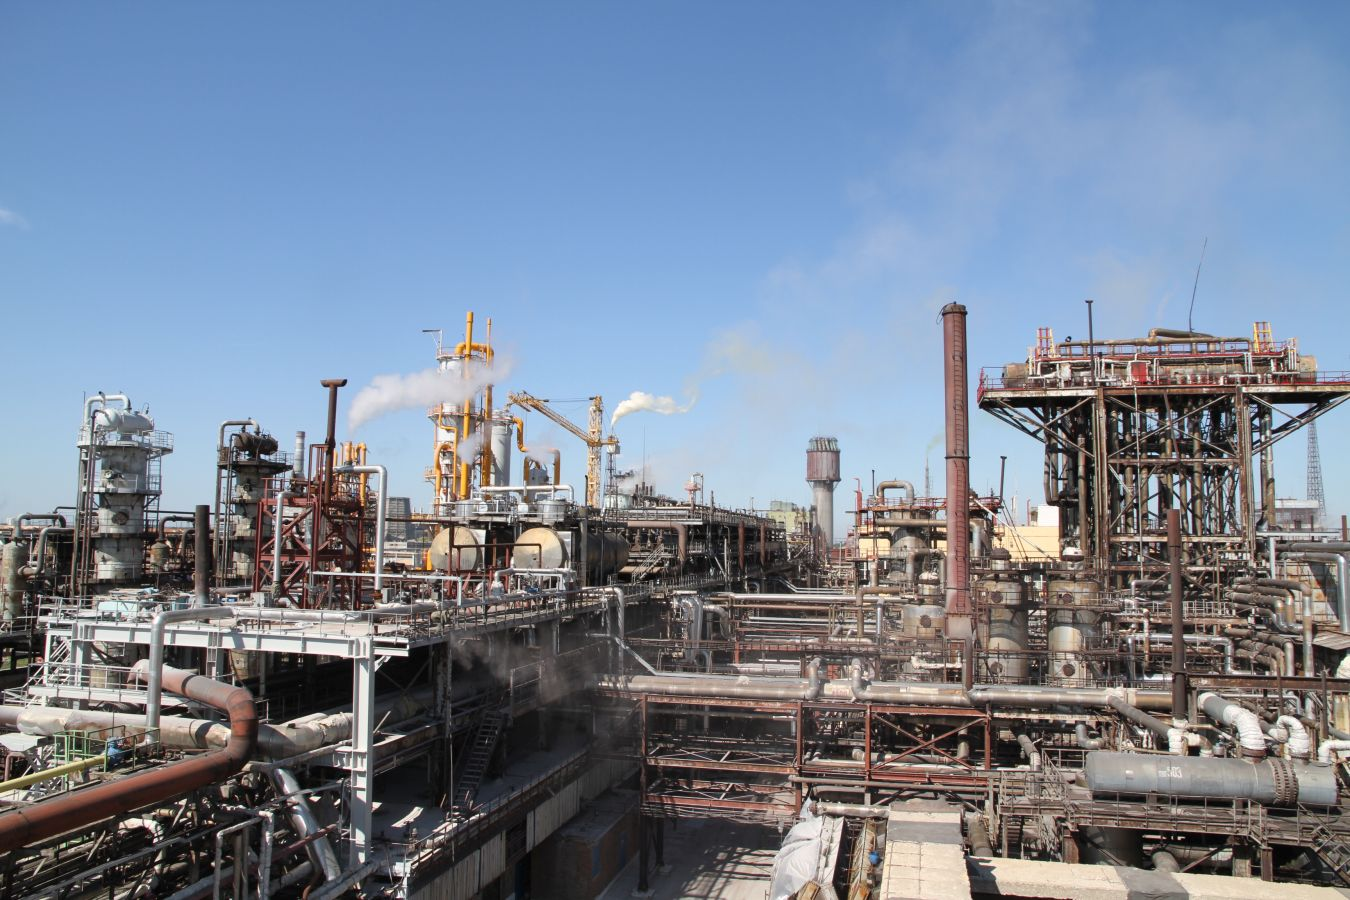 Retrofitting of the ammonia plant with extension of its capacity and reduction of natural gas consumption.